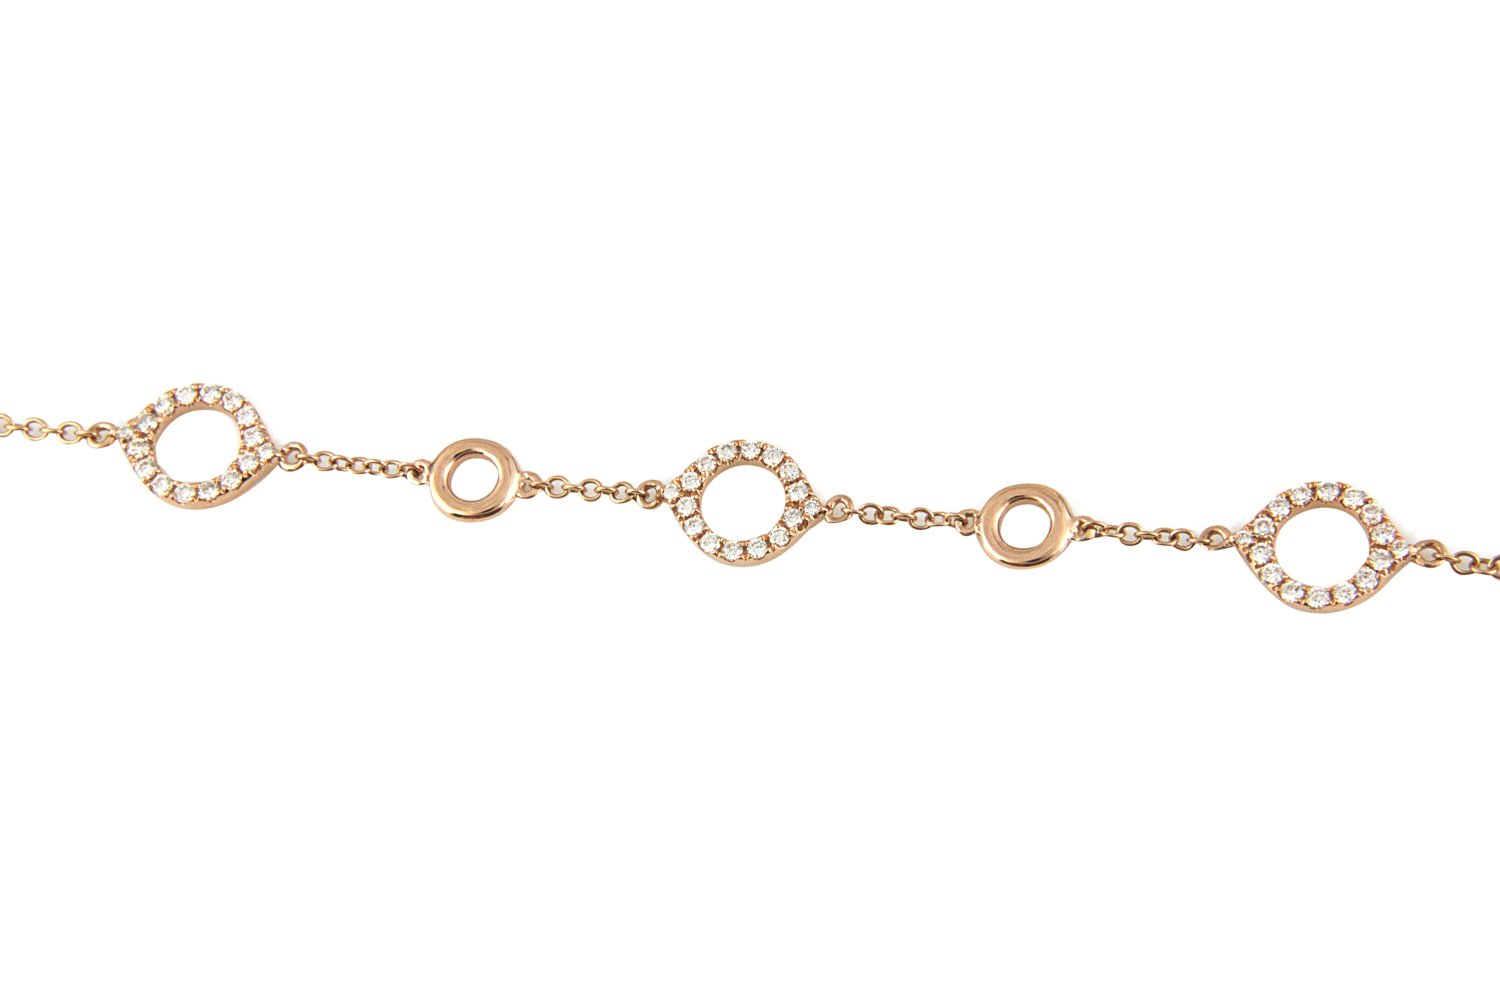 18K Yellow Gold Diamond Bracelet with Round Cut Diamonds And Circle Design 0.71CT